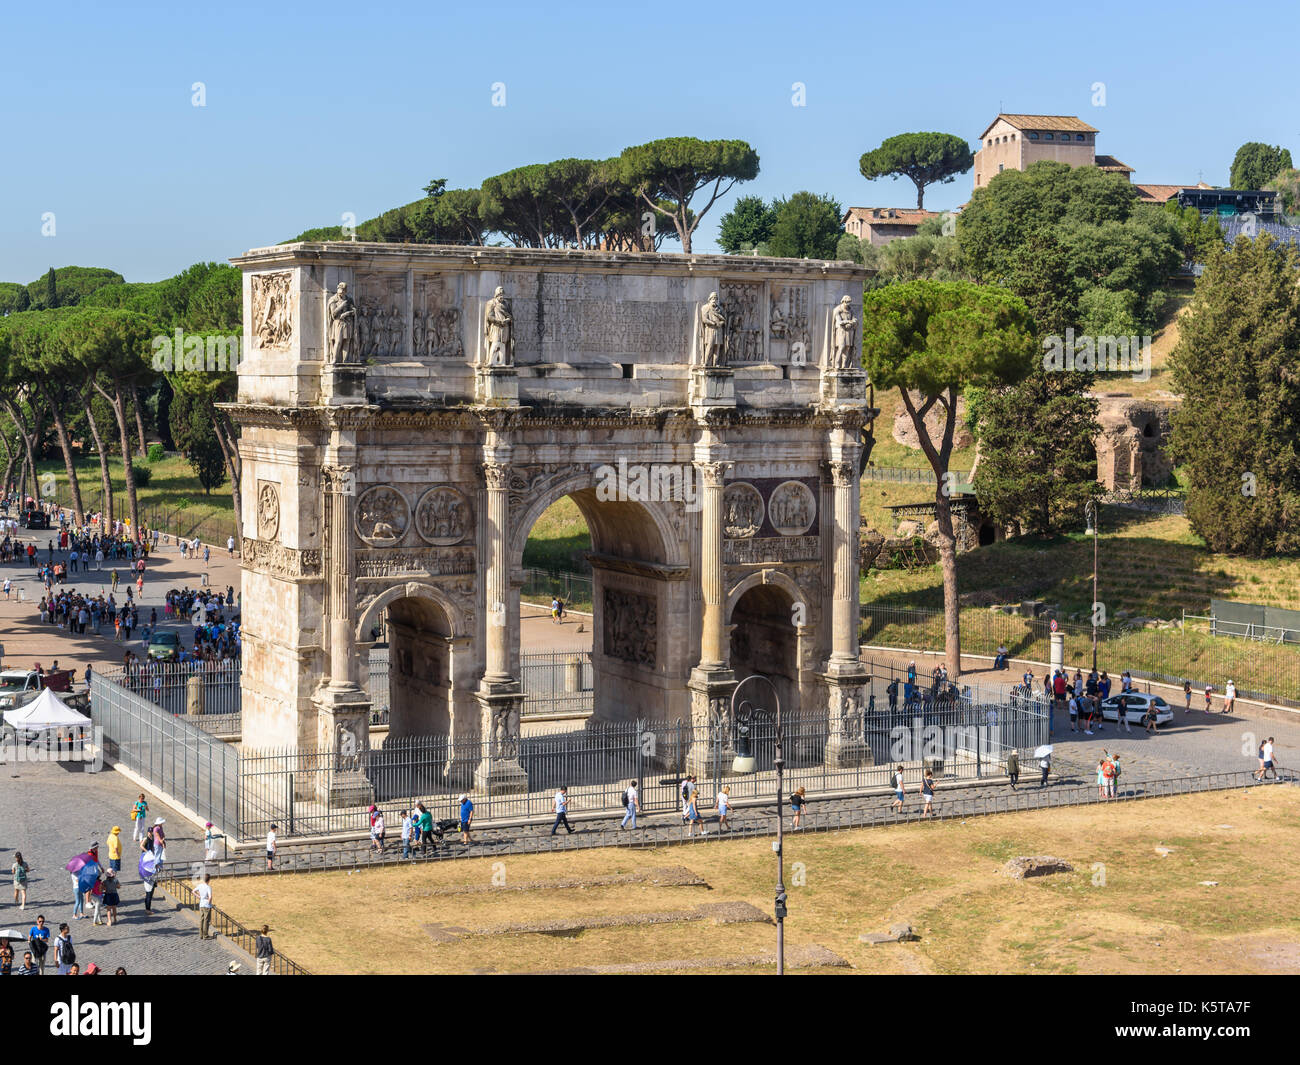 Arch of Constantine viewd from Colosseum, Rome, Italy - Stock Image